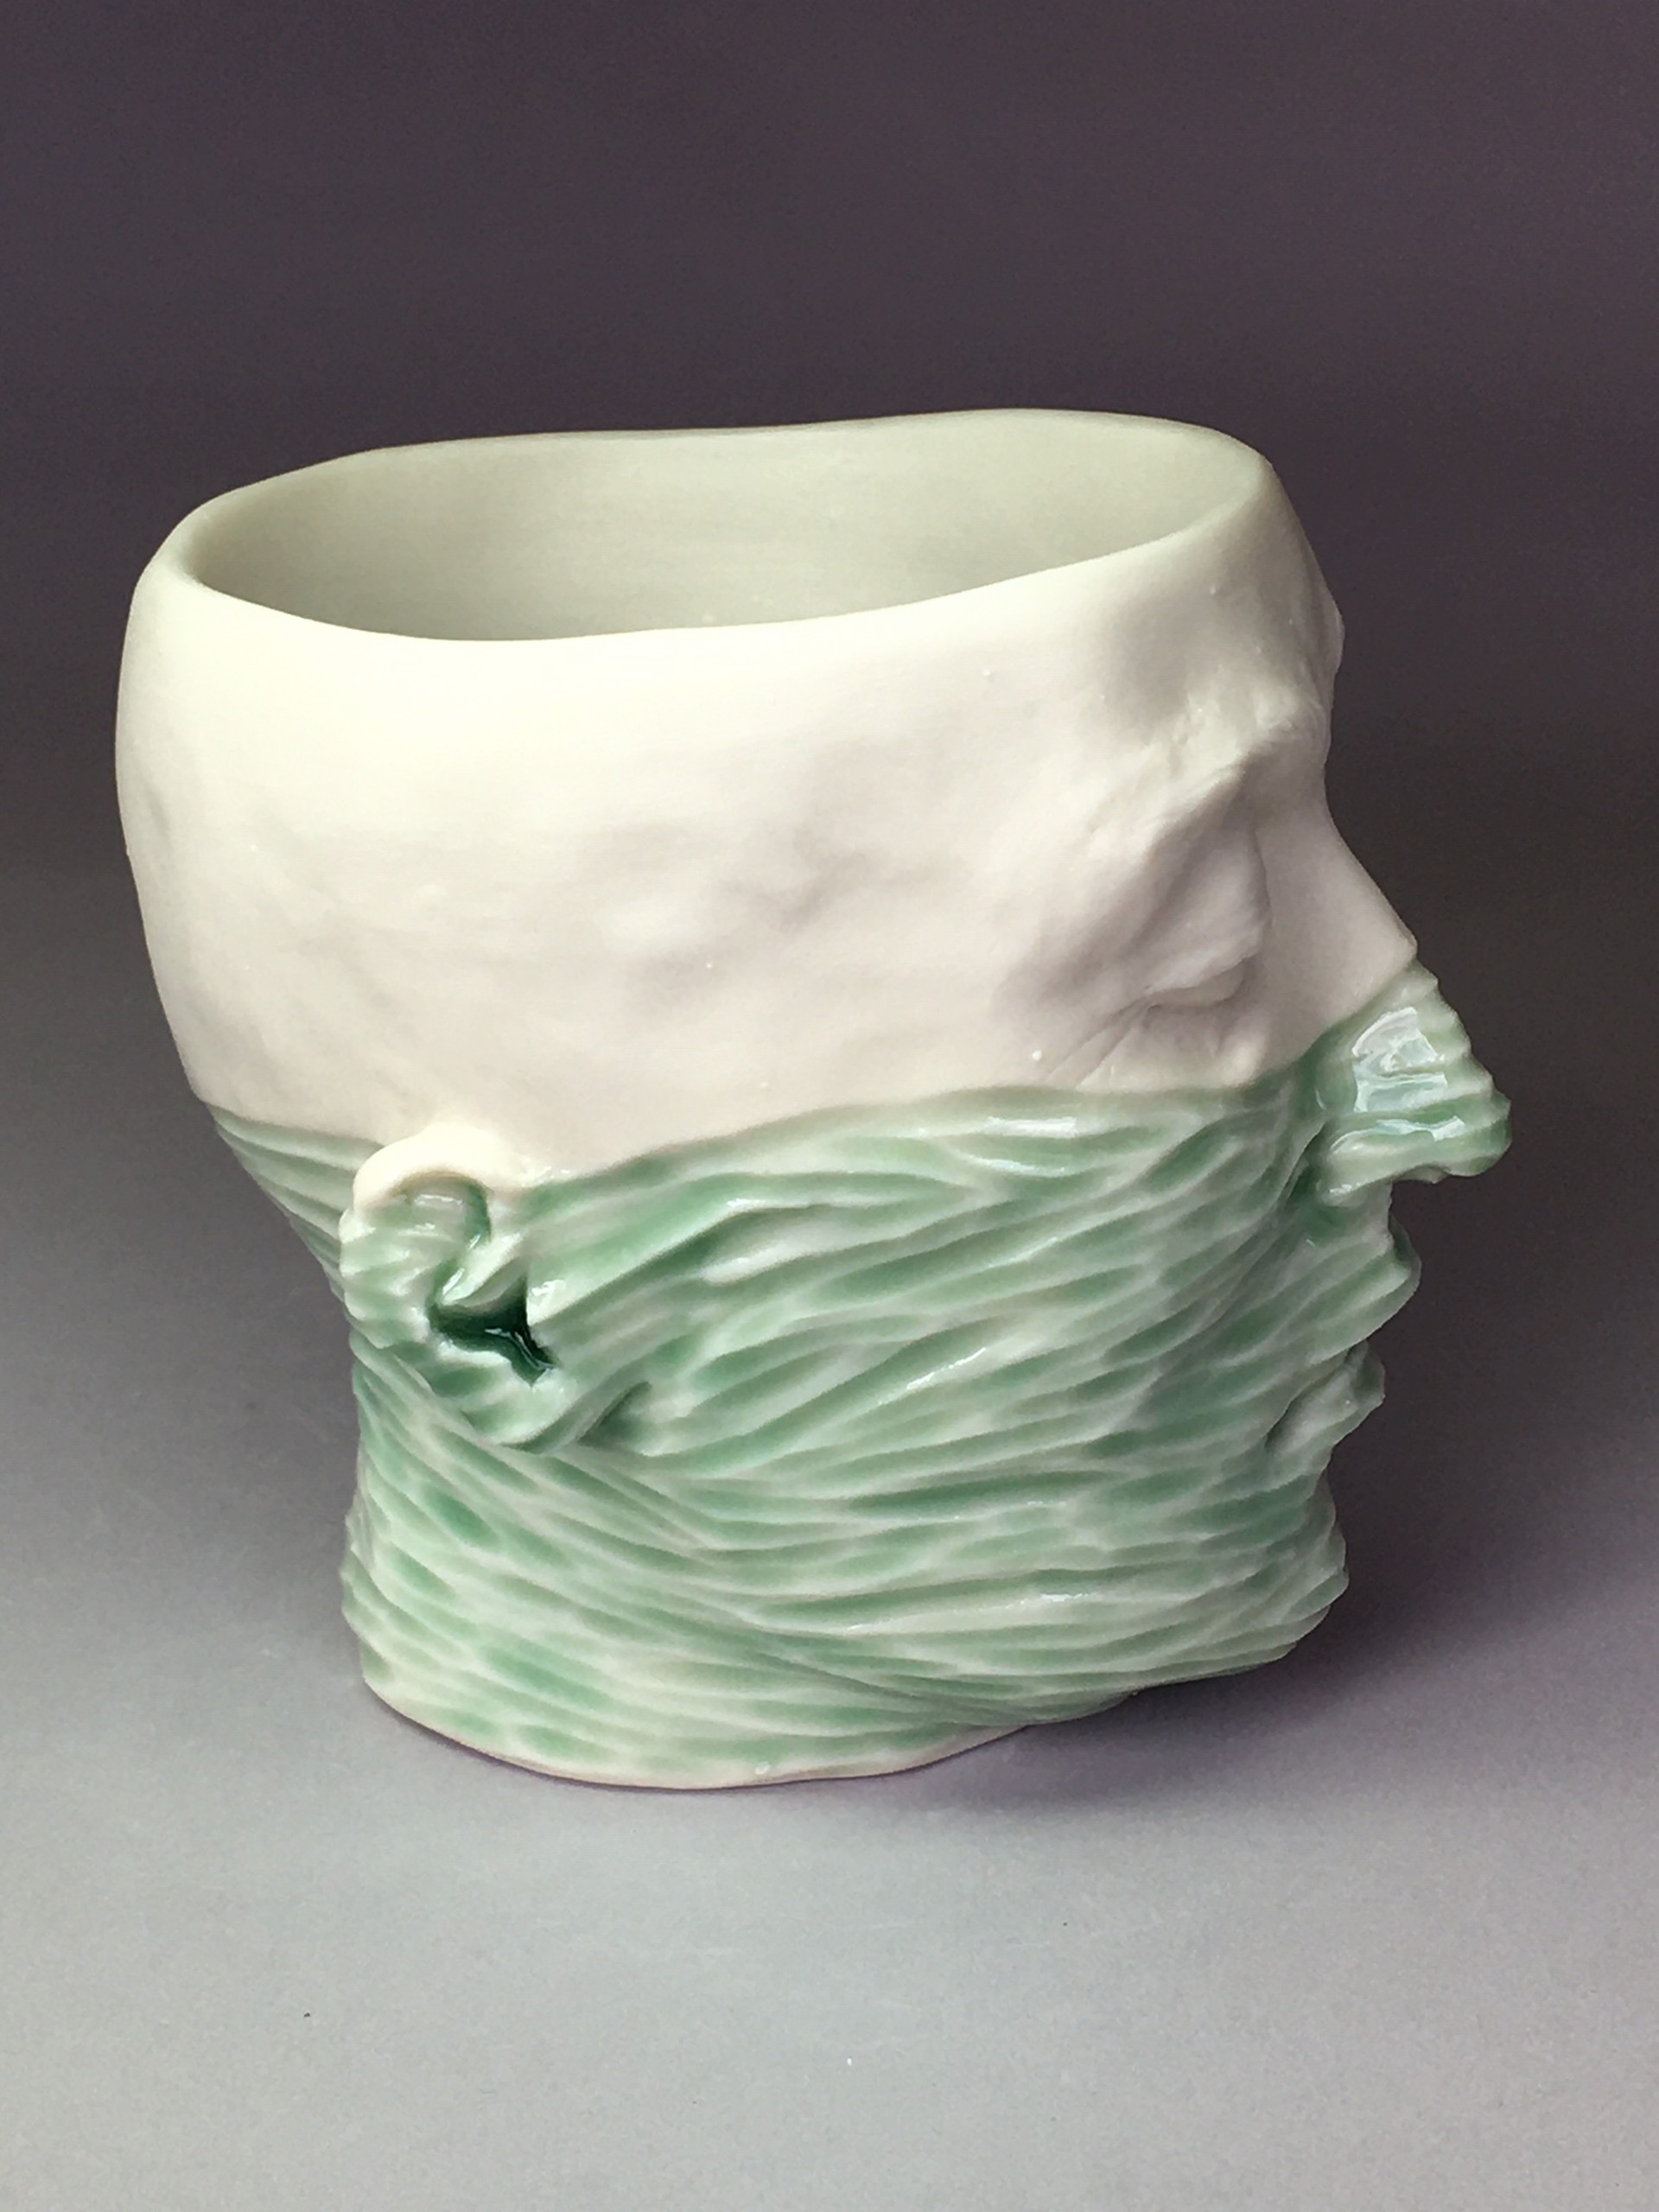 """""""Water Level Cup II"""" (light green celadon, deep teal blue interior) by Adrian Arleo"""